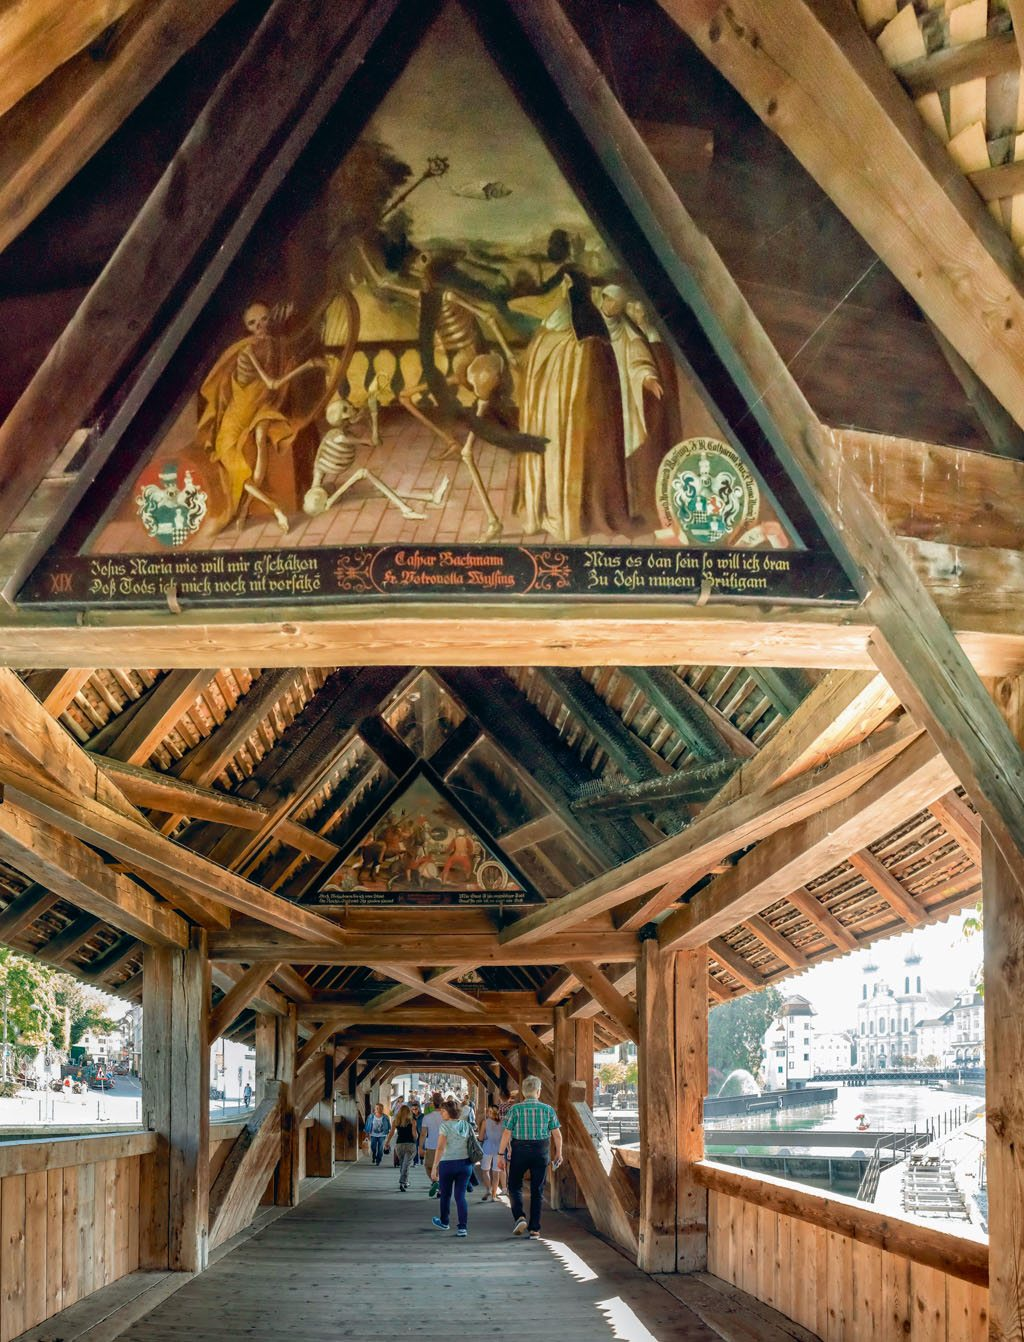 The triangular arches inside Lucerne's 13th-century Spreuerbrücke (Spreuer Bridge) has paintings representing the Danse Macabre. The paintings inside this covered wooden bridge feature different aspects of medieval life. What is common to all of them is a grinning skeleton reminding passersby of the inevitability of death. Photo: Van Der Meer Rene/Prisma/Dinodia